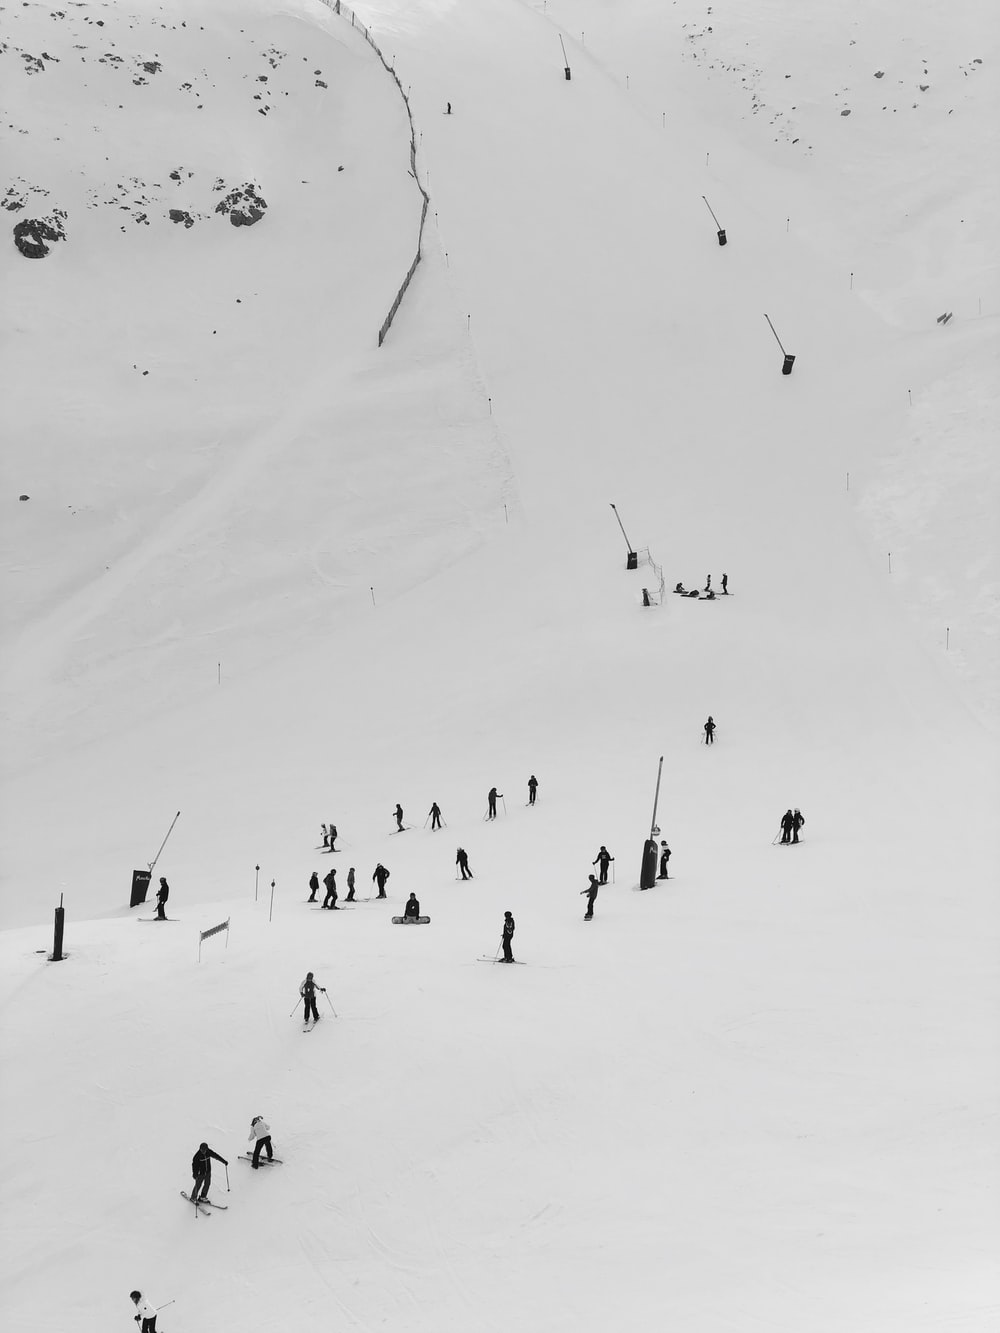 snowboarders on snow hill